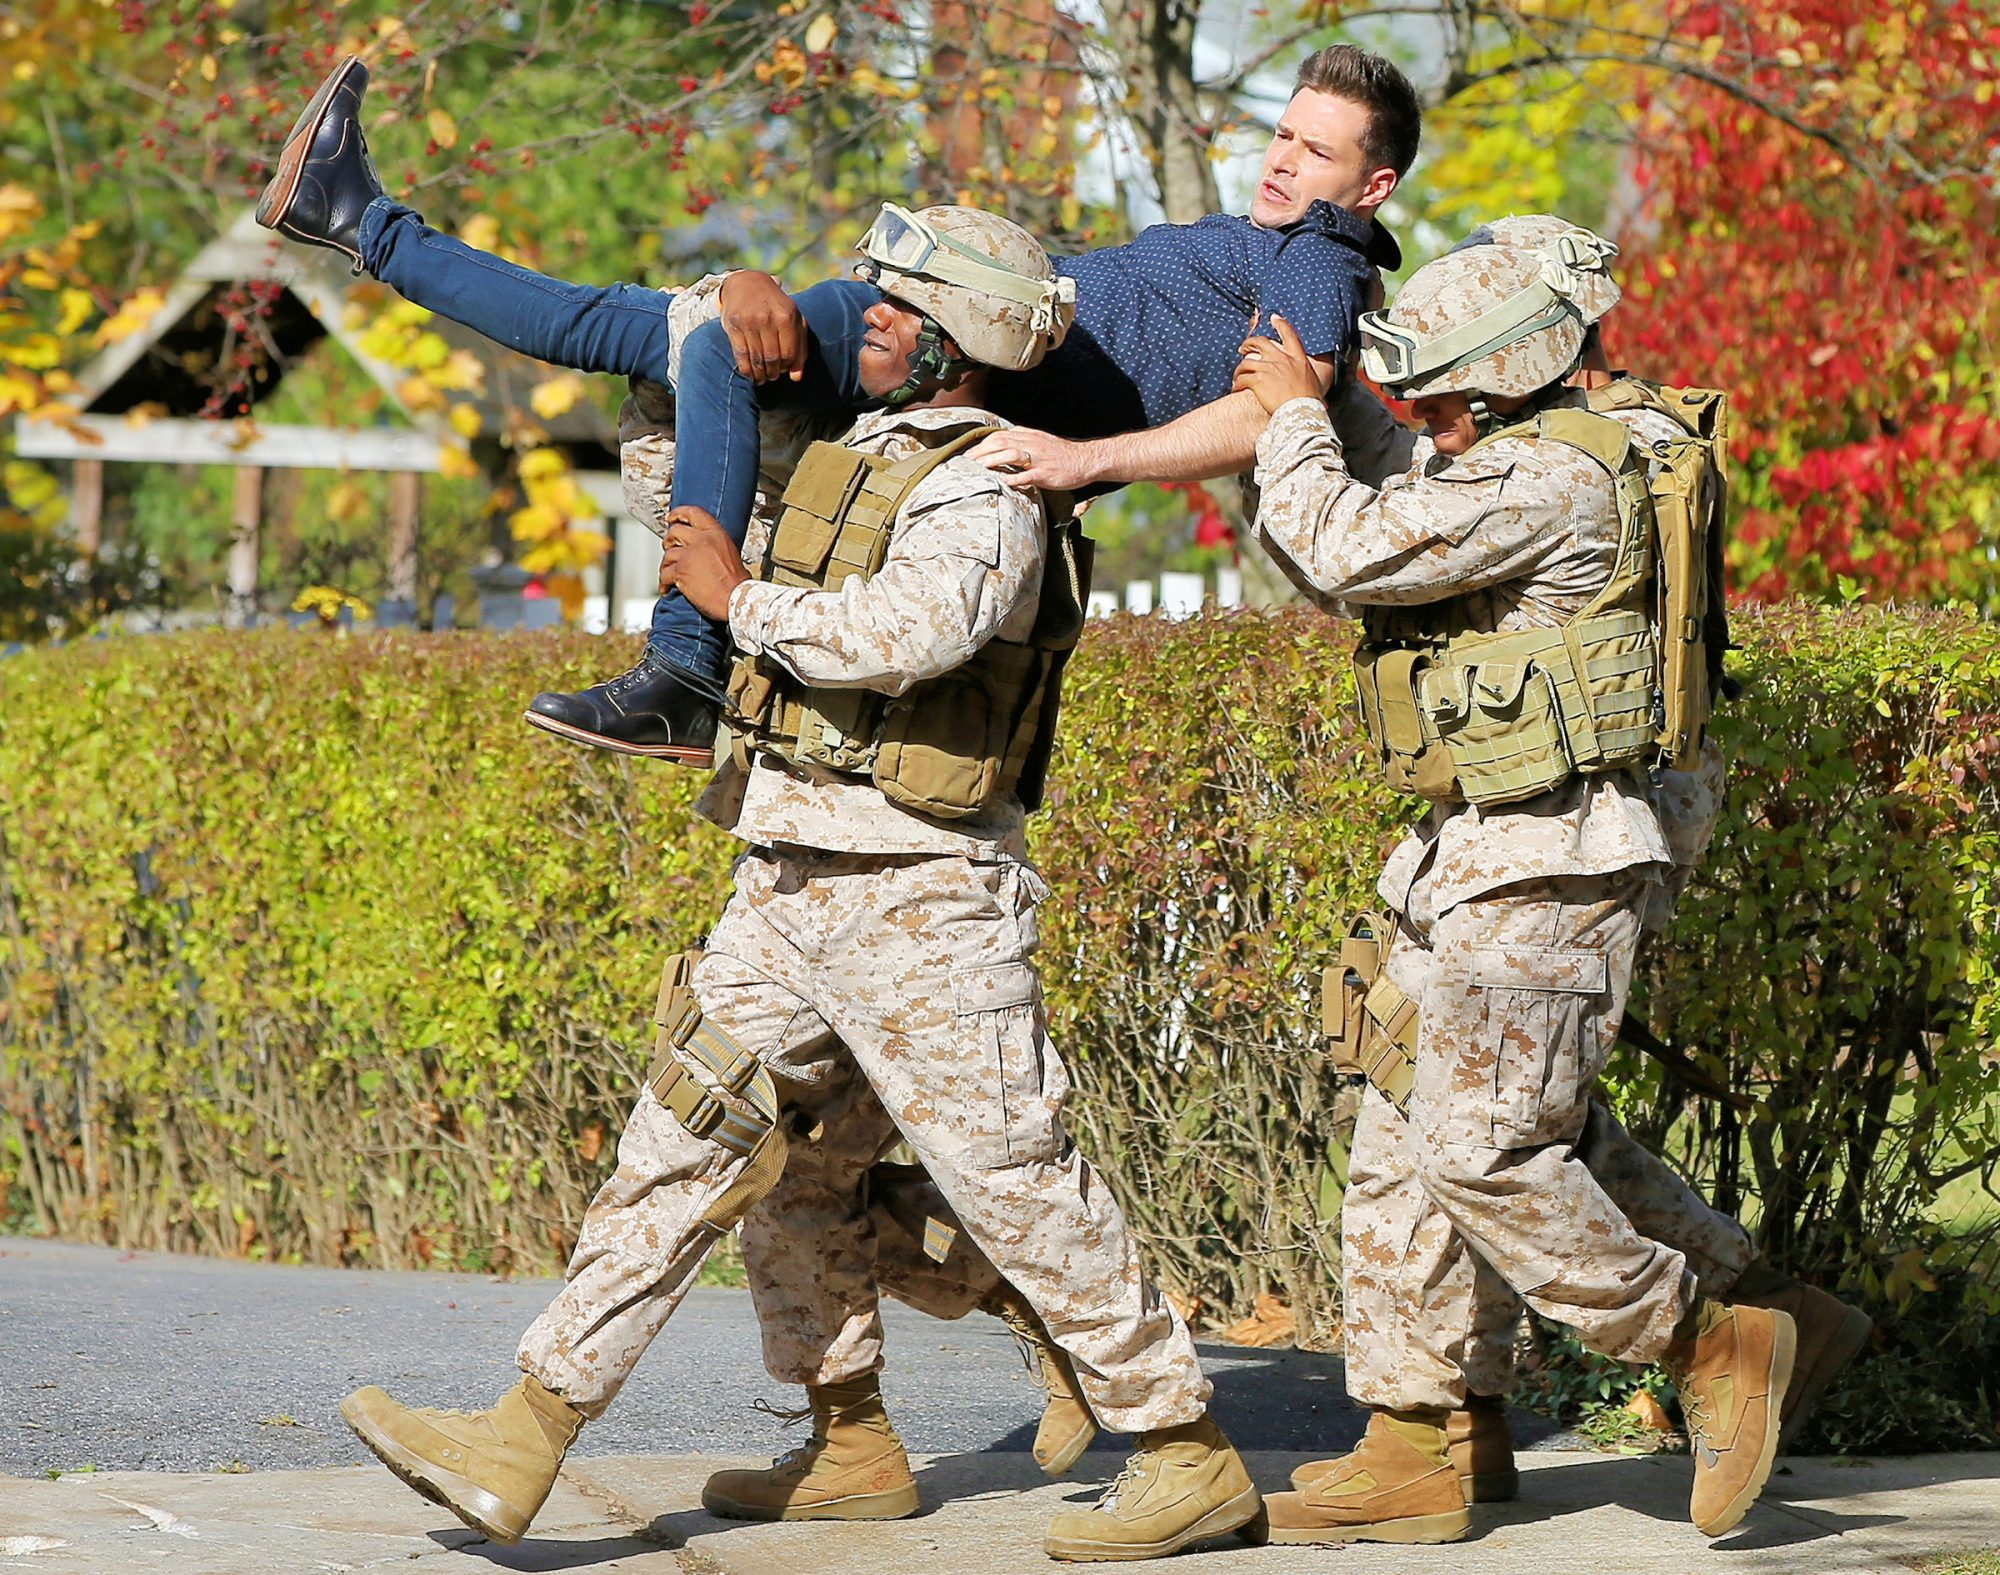 Ben Rappaport Gets Carried Away By Several Marines Filming 'Modern Love' In Schenectady, New York